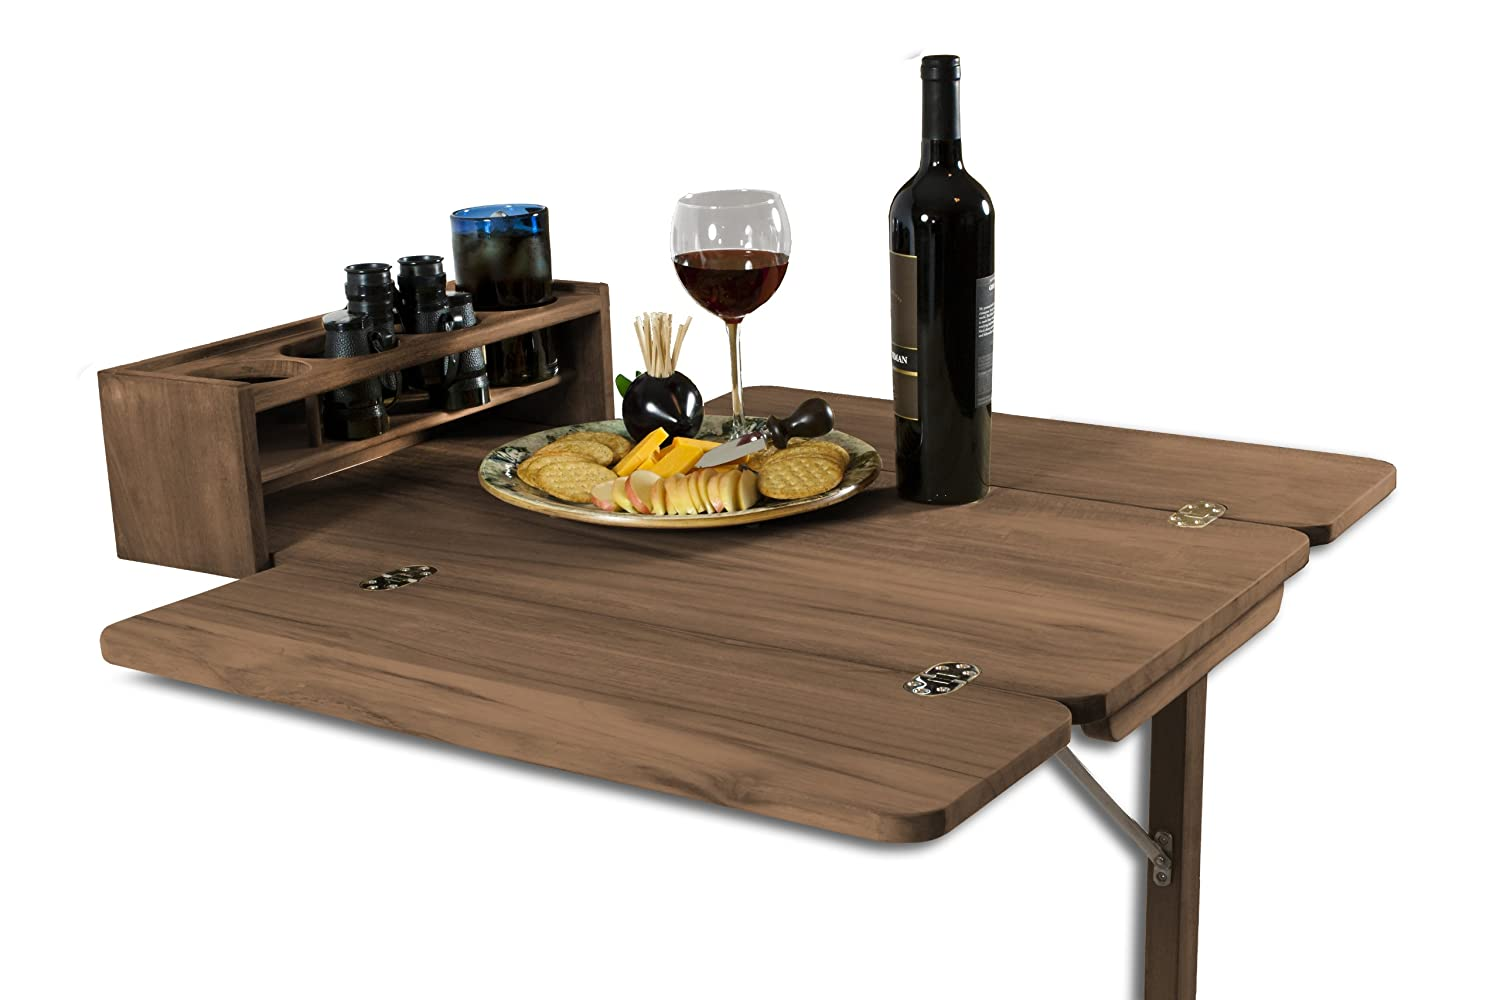 Amazon SeaTeak Cockpit Table with Folding Leaves and